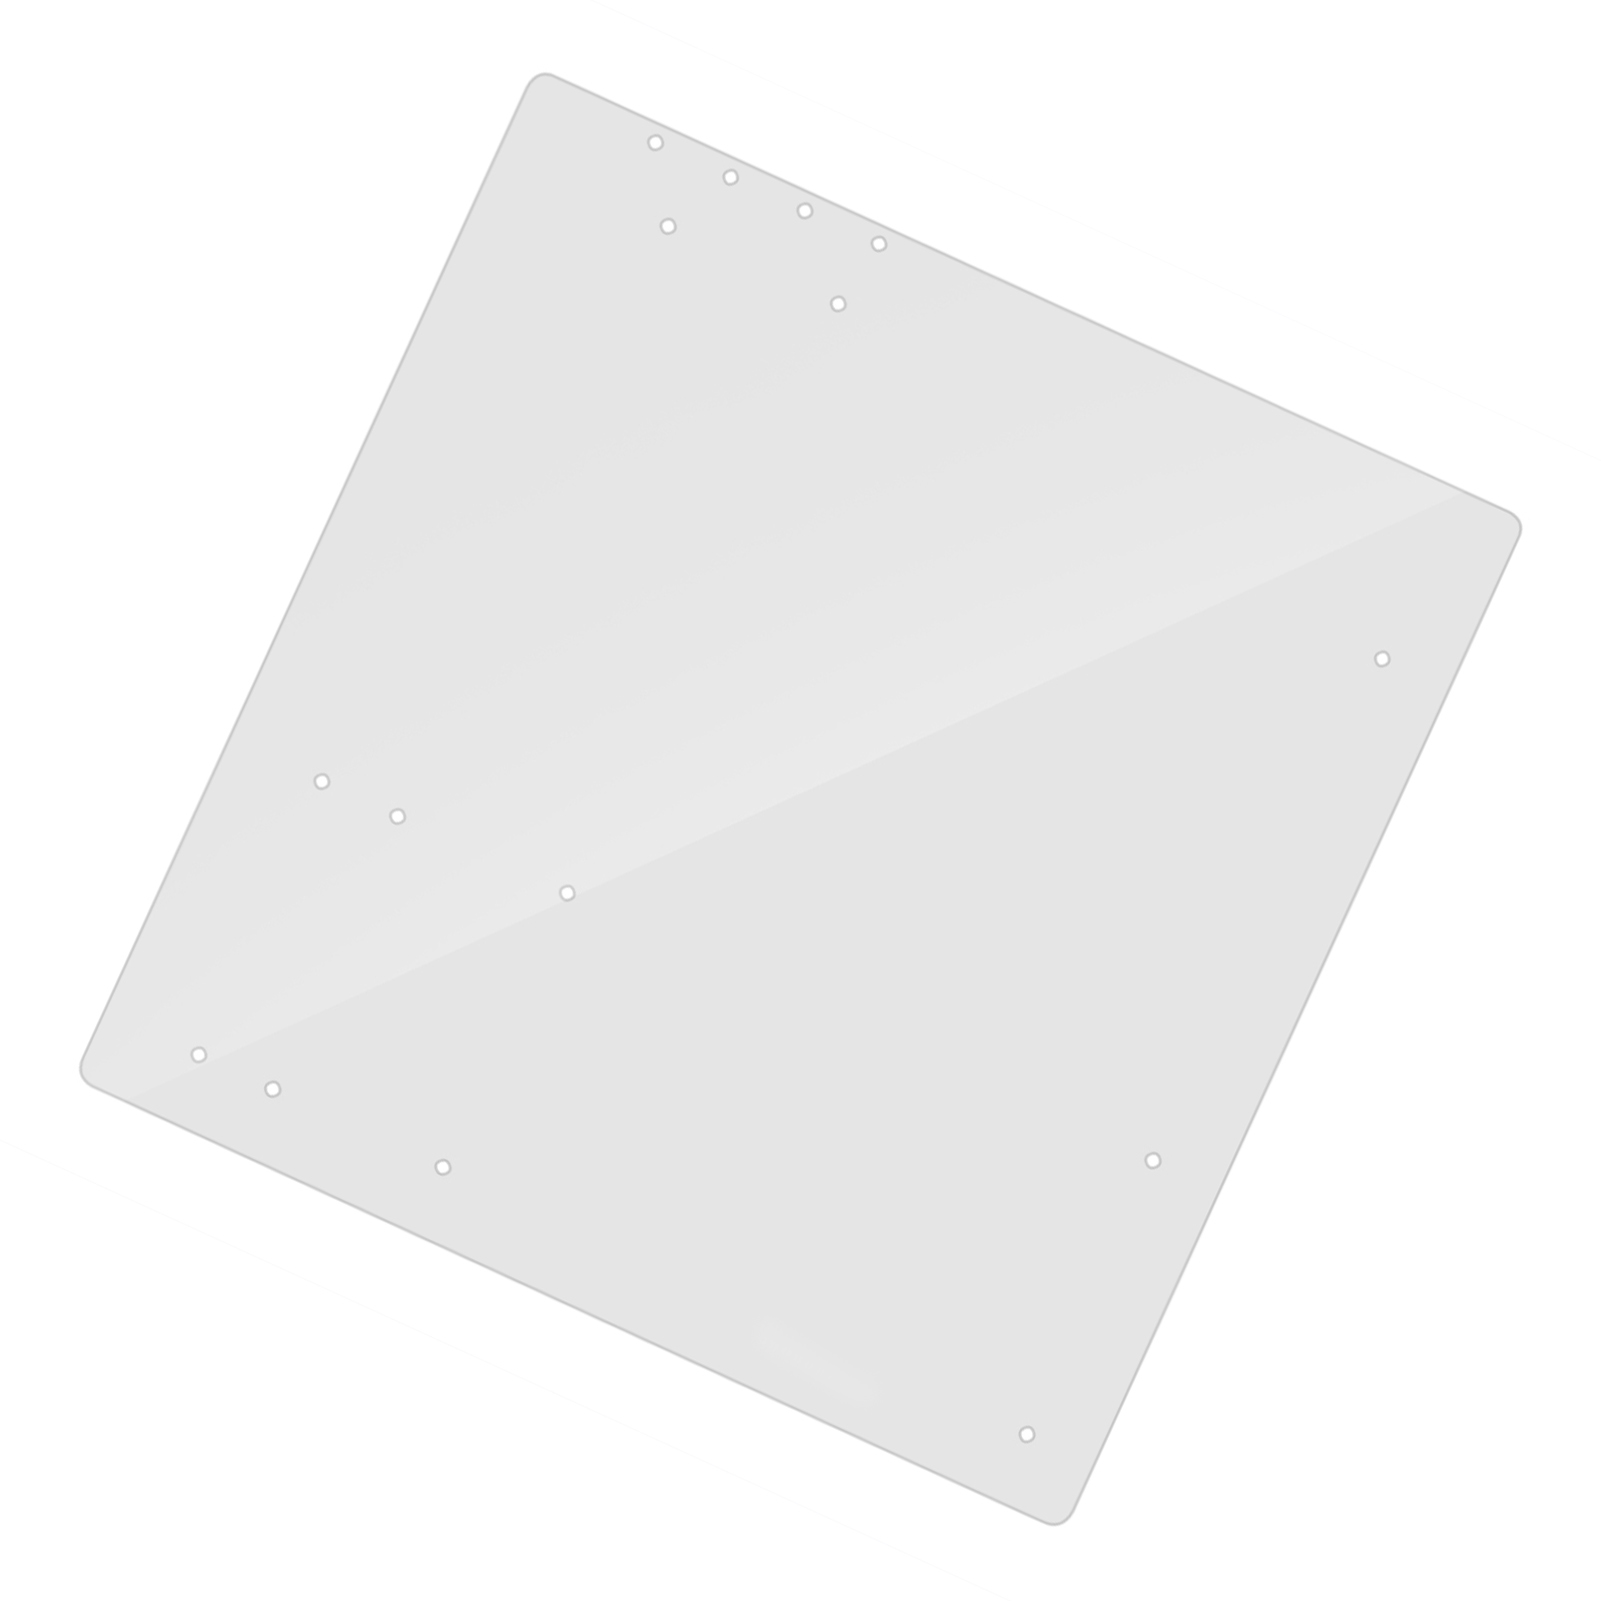 DIY-Open-Frame-ITX-M-ATX-ATX-Motherboard-Transparent-Stand-For-Computer-Case-SPS thumbnail 17